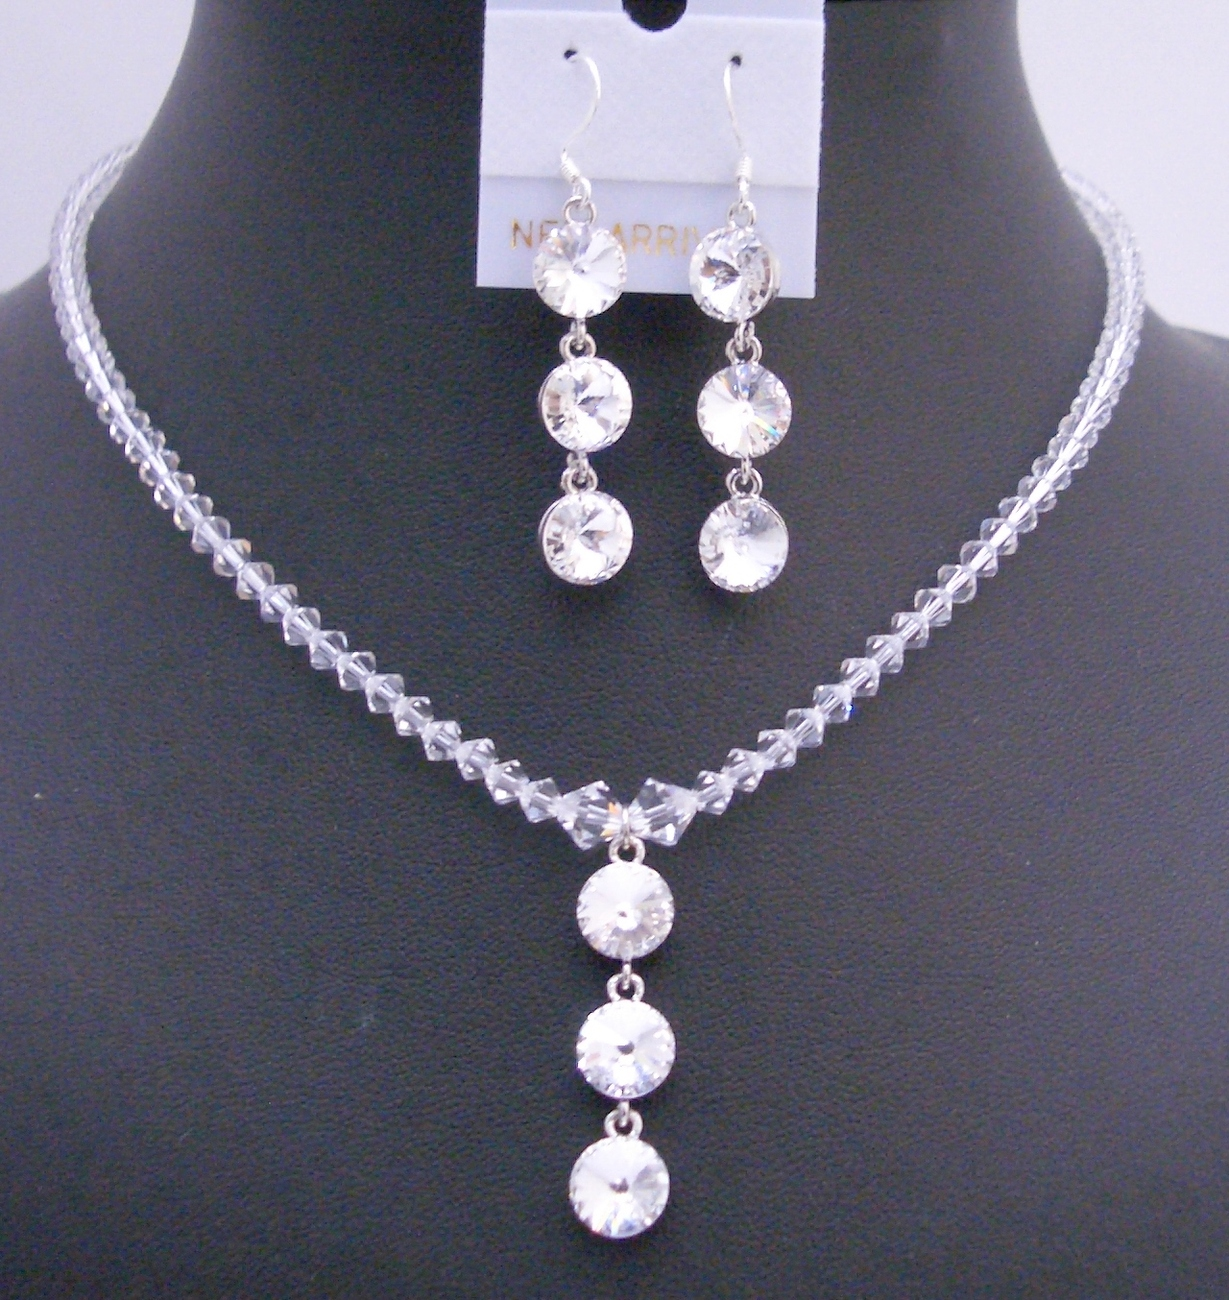 Drop Down Pendant Necklace Swarovski Clear Crystals Handmade Jewelry